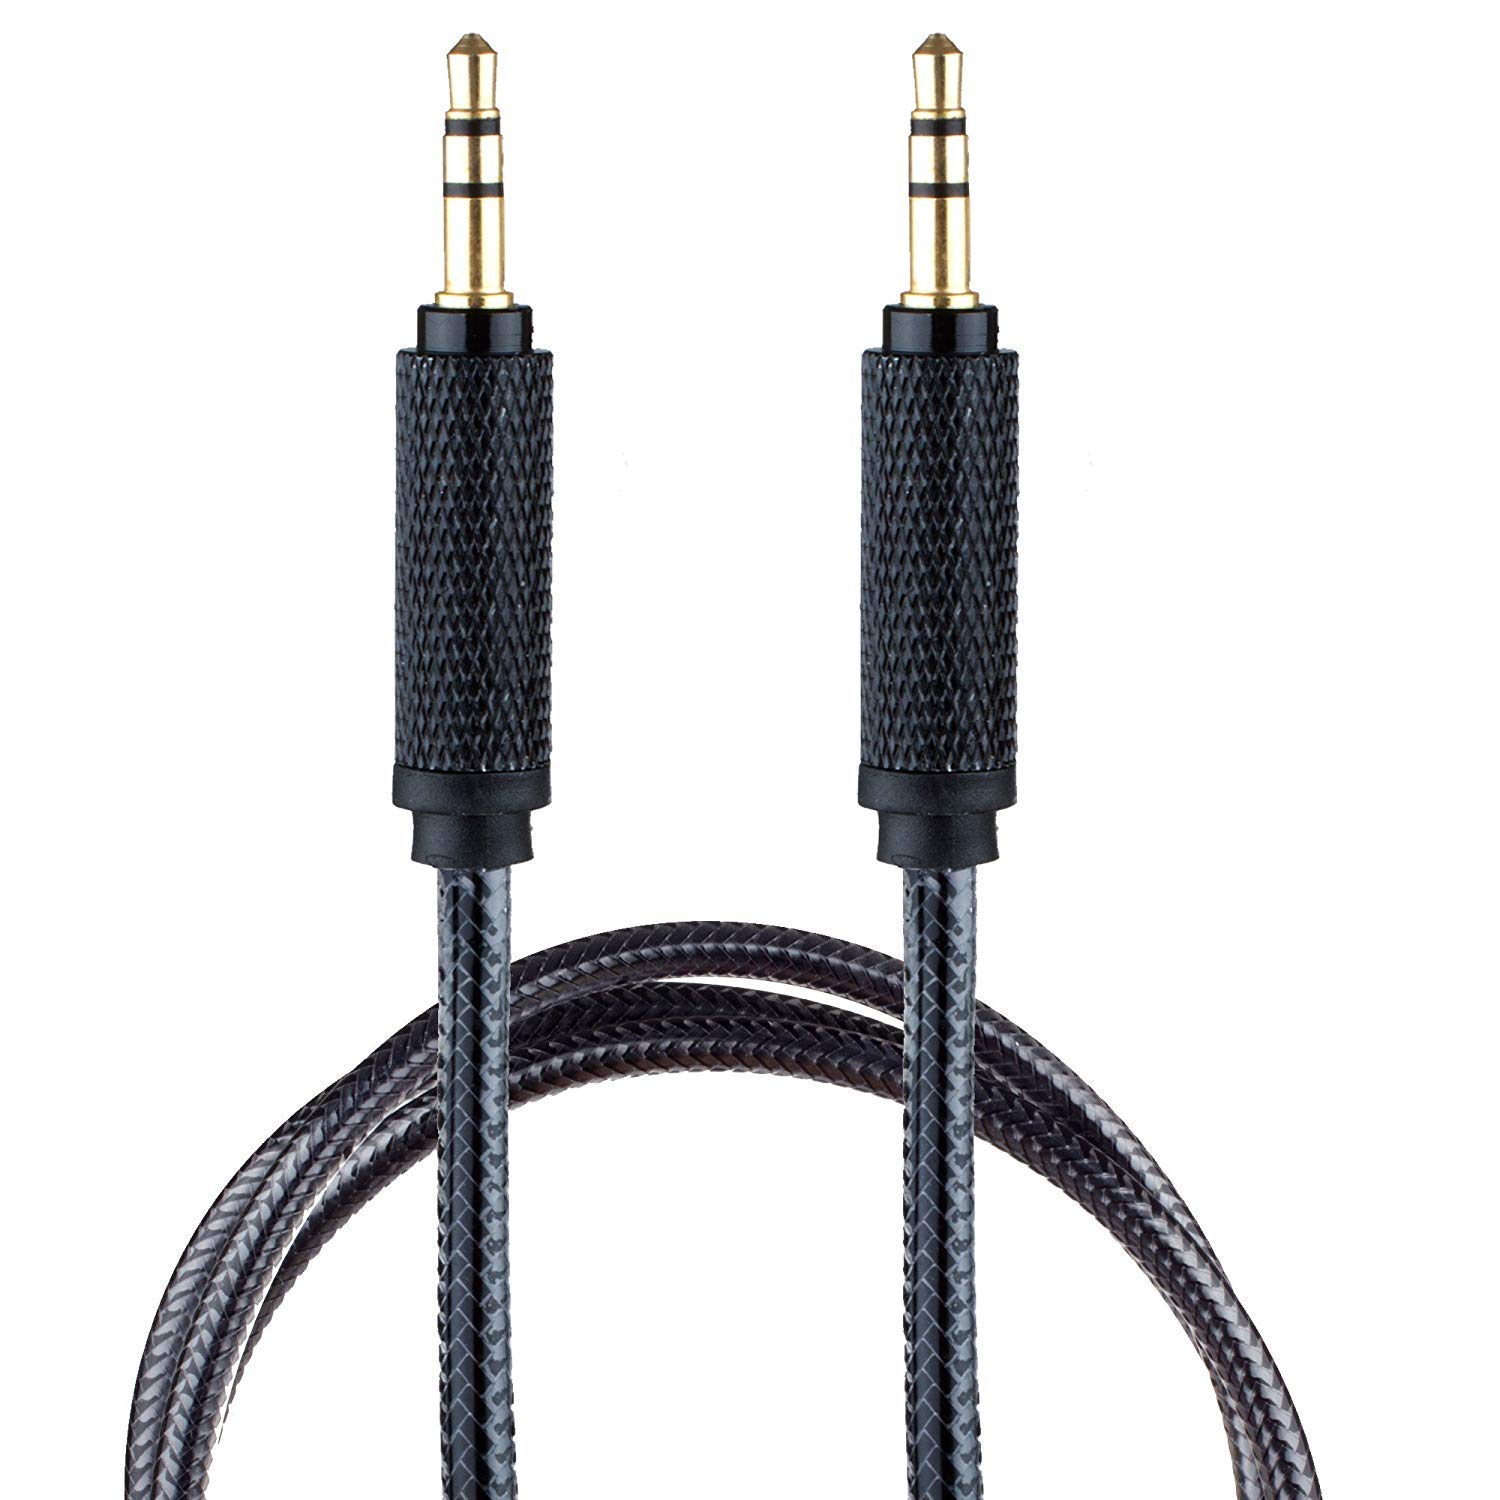 Surya 3.5mm AUX in Cord Auxiliary Audio Cable for Car [6 ft Nylon] 3.5 mm Male to Male 1/8 Stereo Wire w/Sheilded Connector [Black]